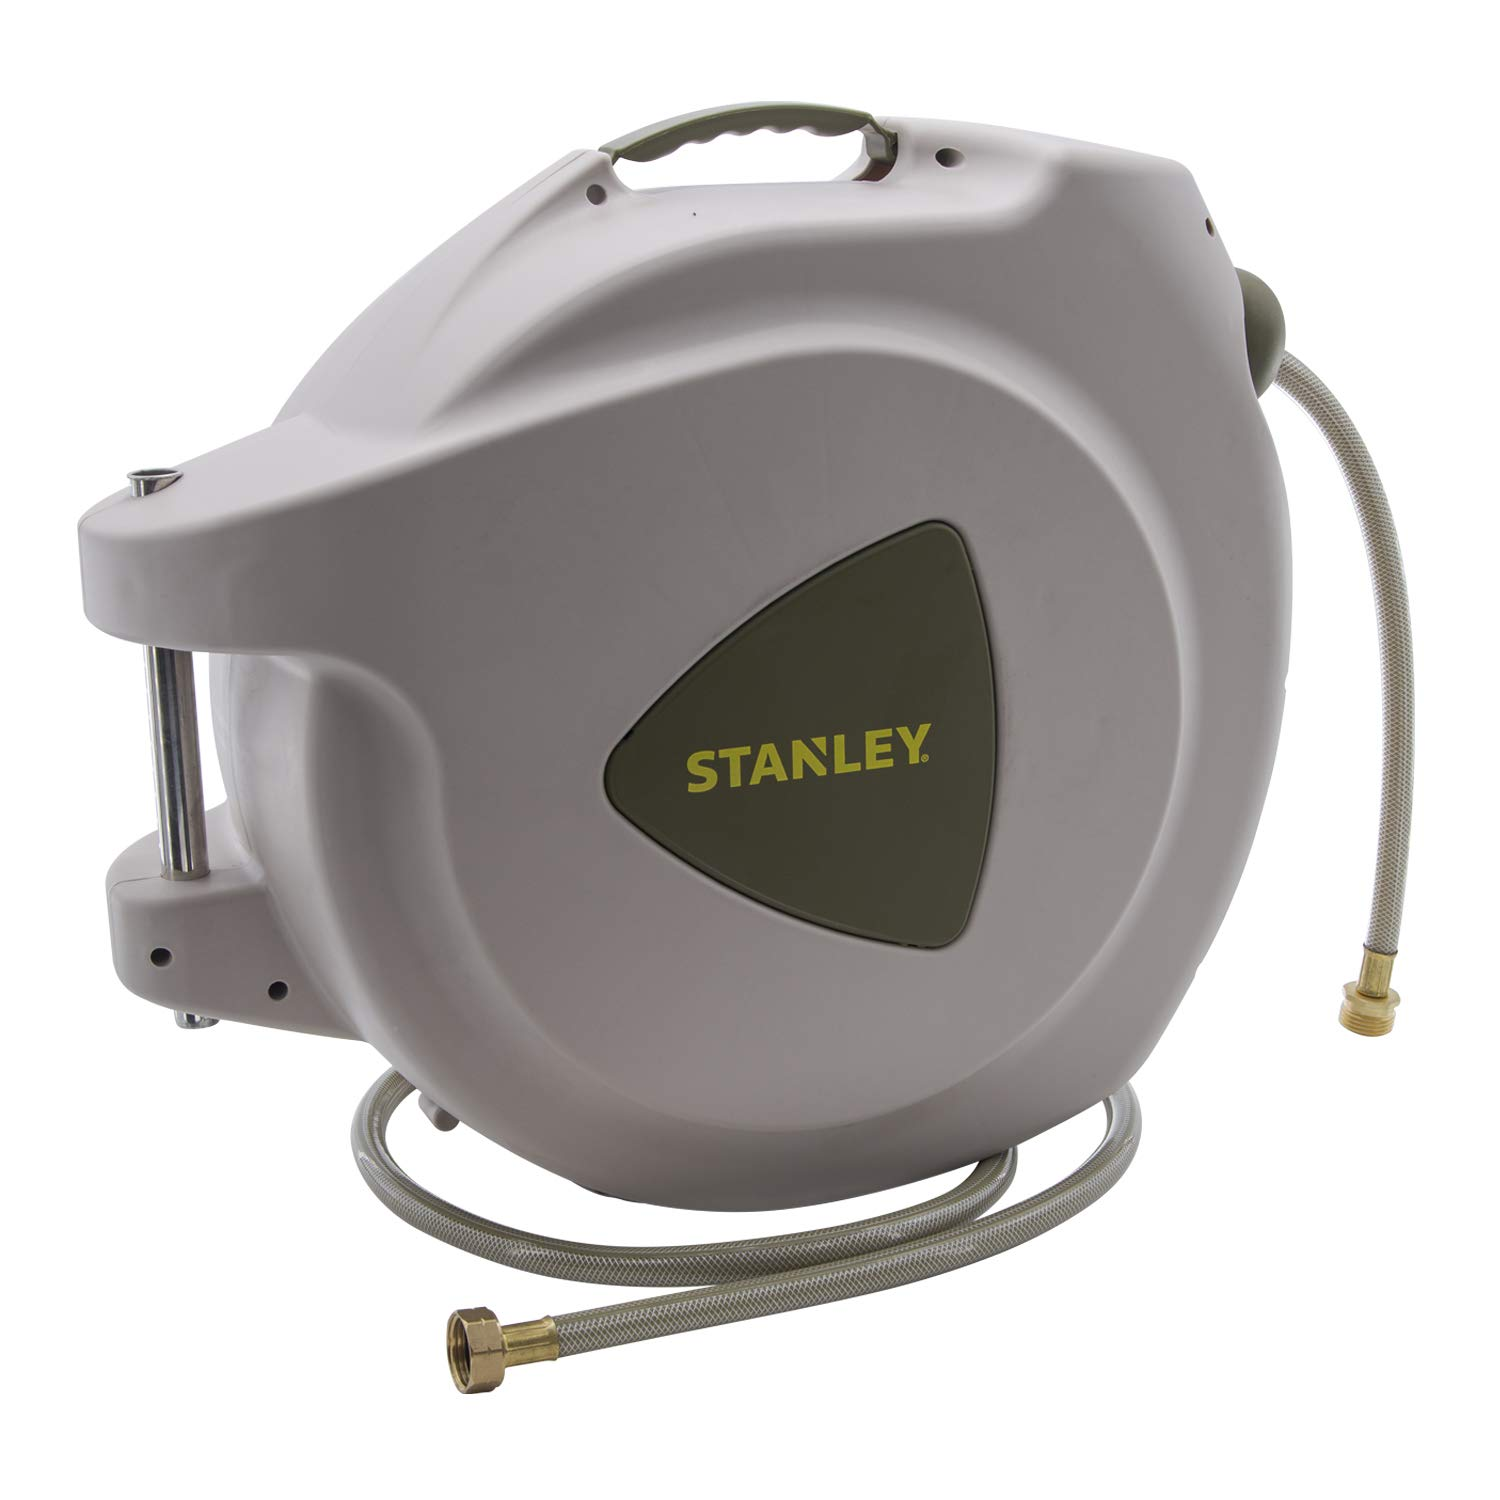 Stanley Garden BDS6620 65 FT Automatic